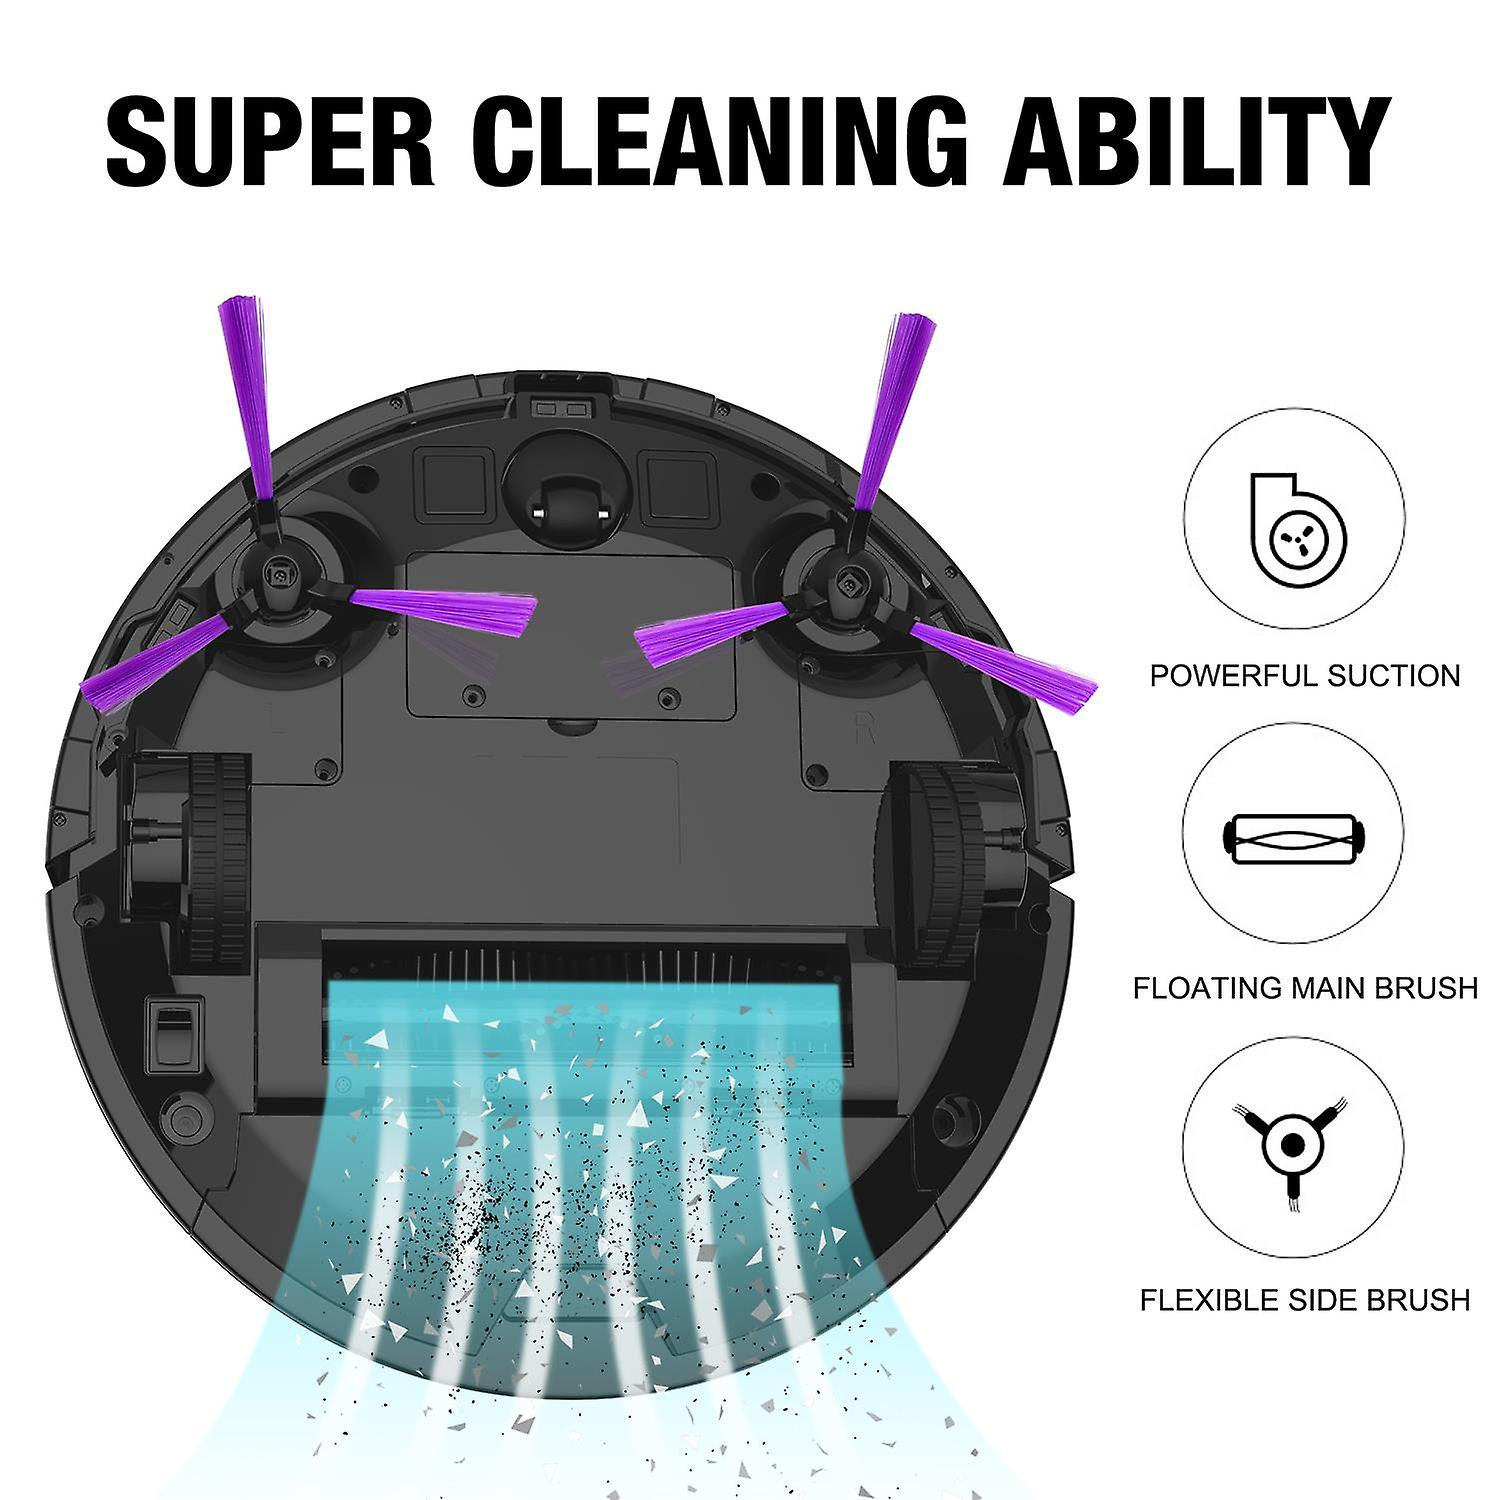 Aiibot Robotic Vacuum Cleaner, Strong Suction Infrared Sensors, Good for Pet Hair, Intelligent Cleaner with Remote Control